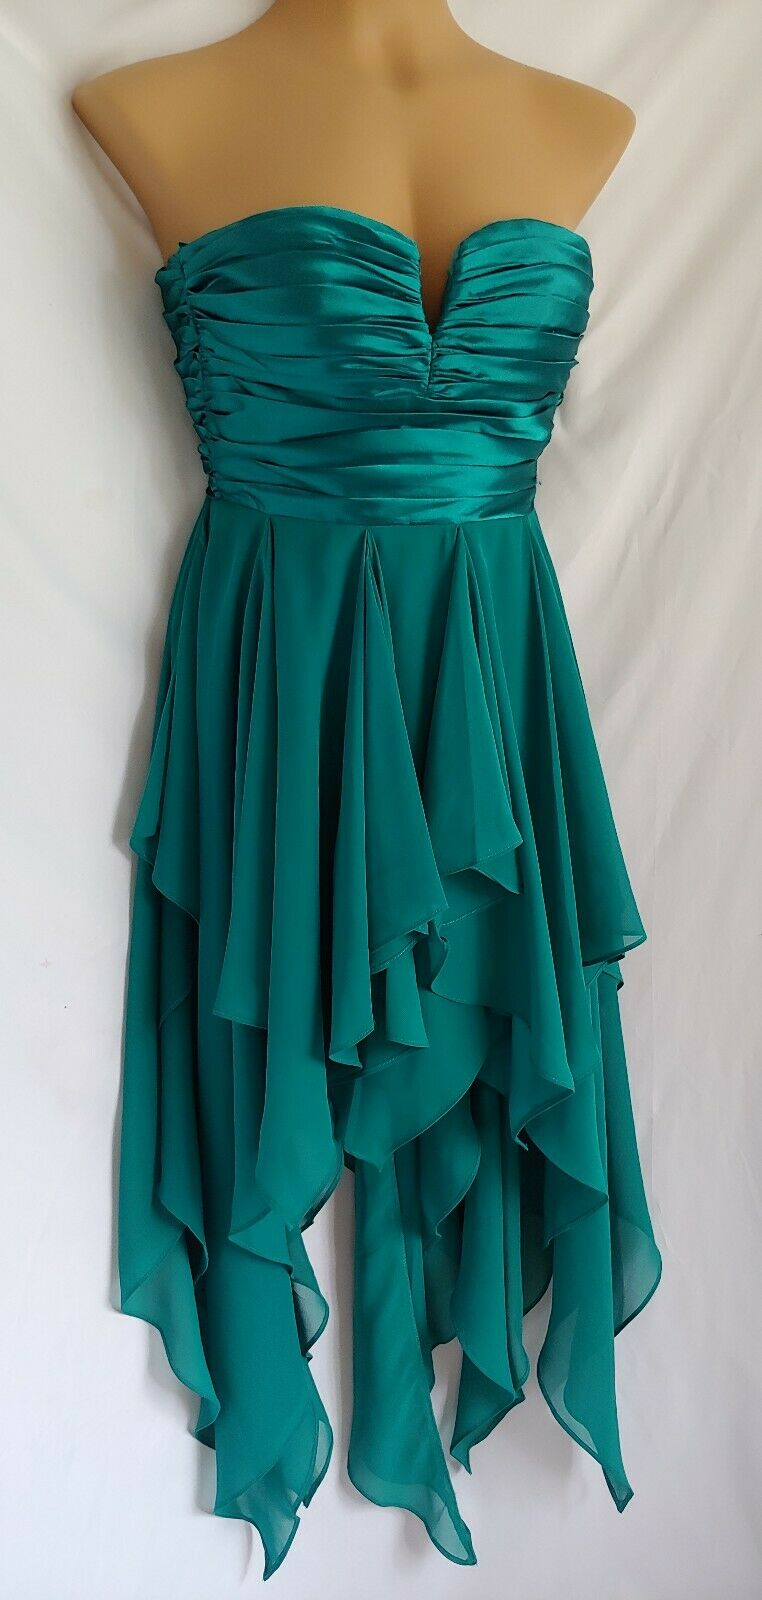 Reign On Teal Satin And Chiffon Asymmetrical Hem Strapless Gown Size 1/2